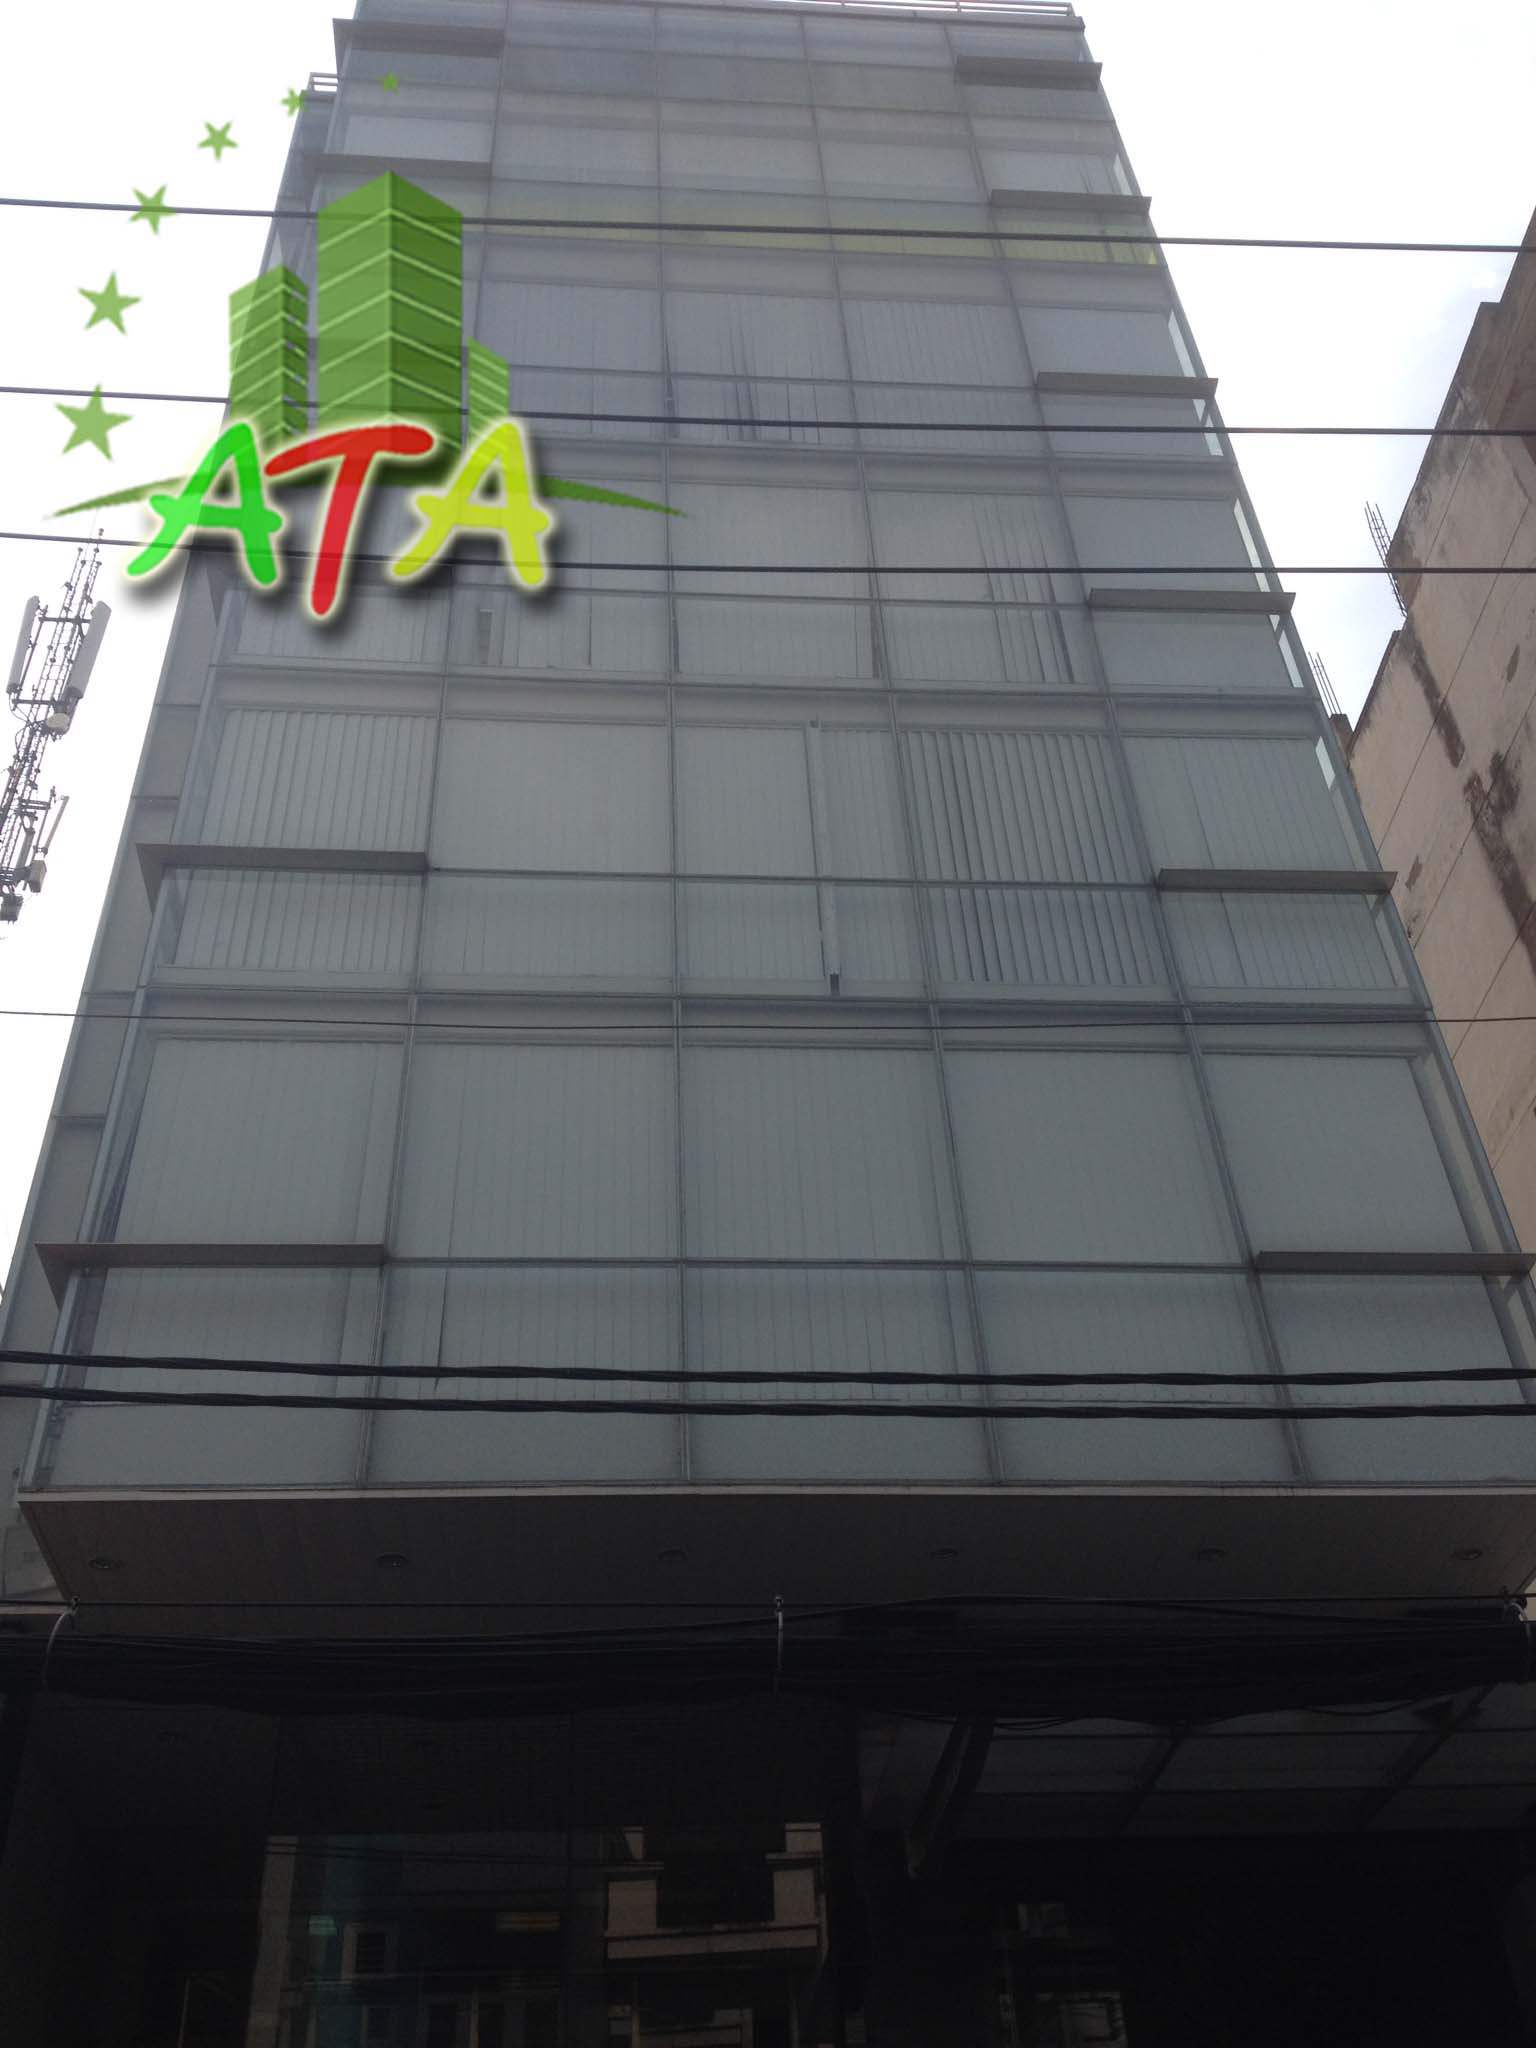 LTA Bussiness Center